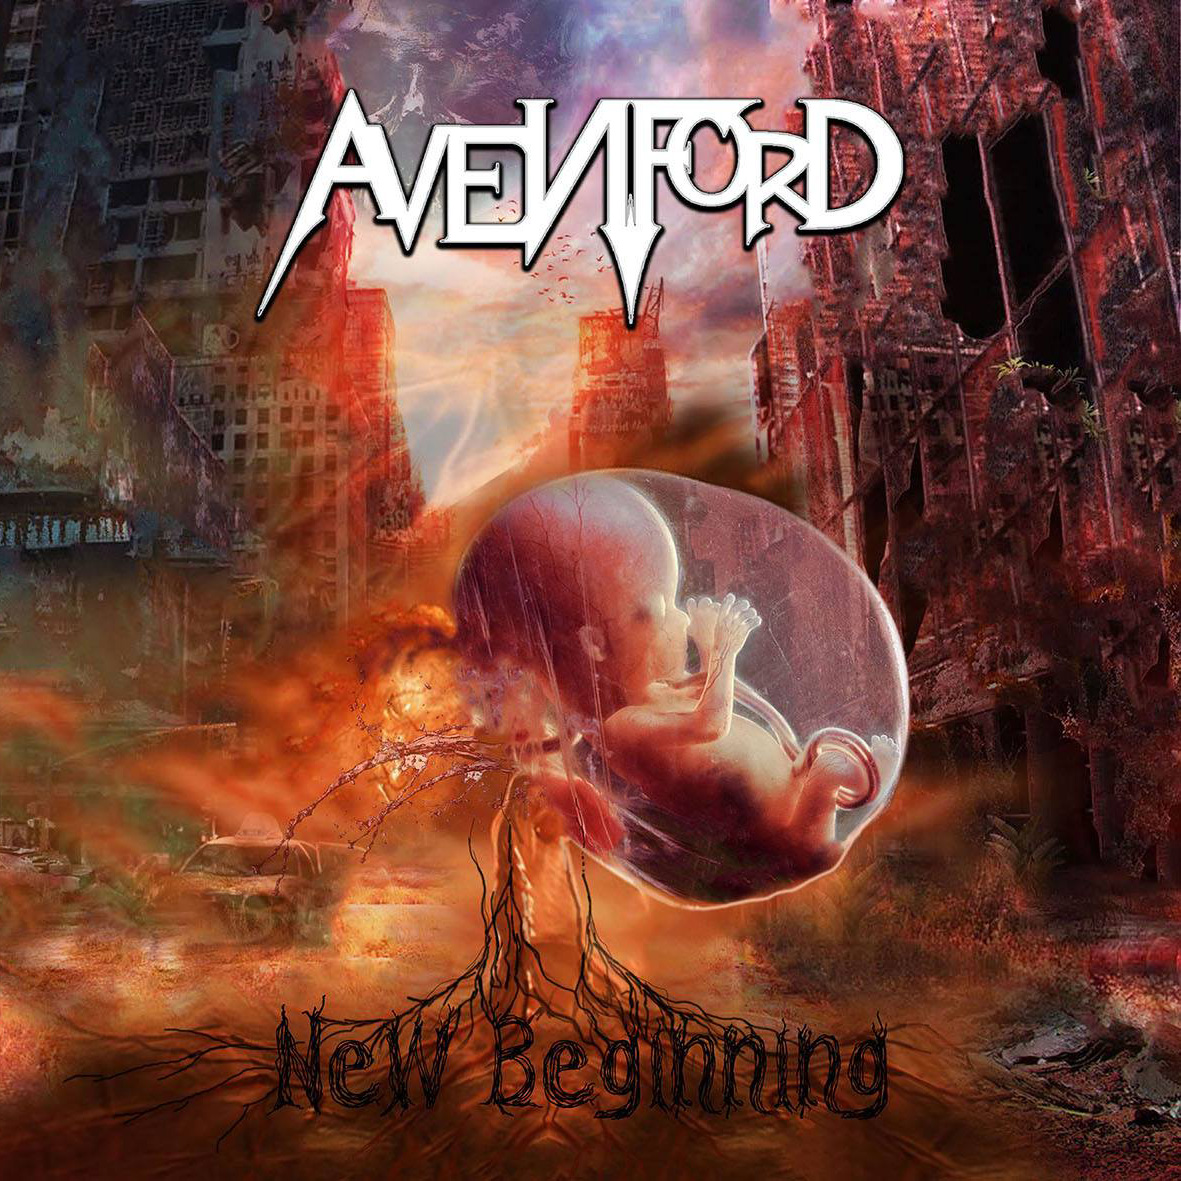 Avenford – New Beginning